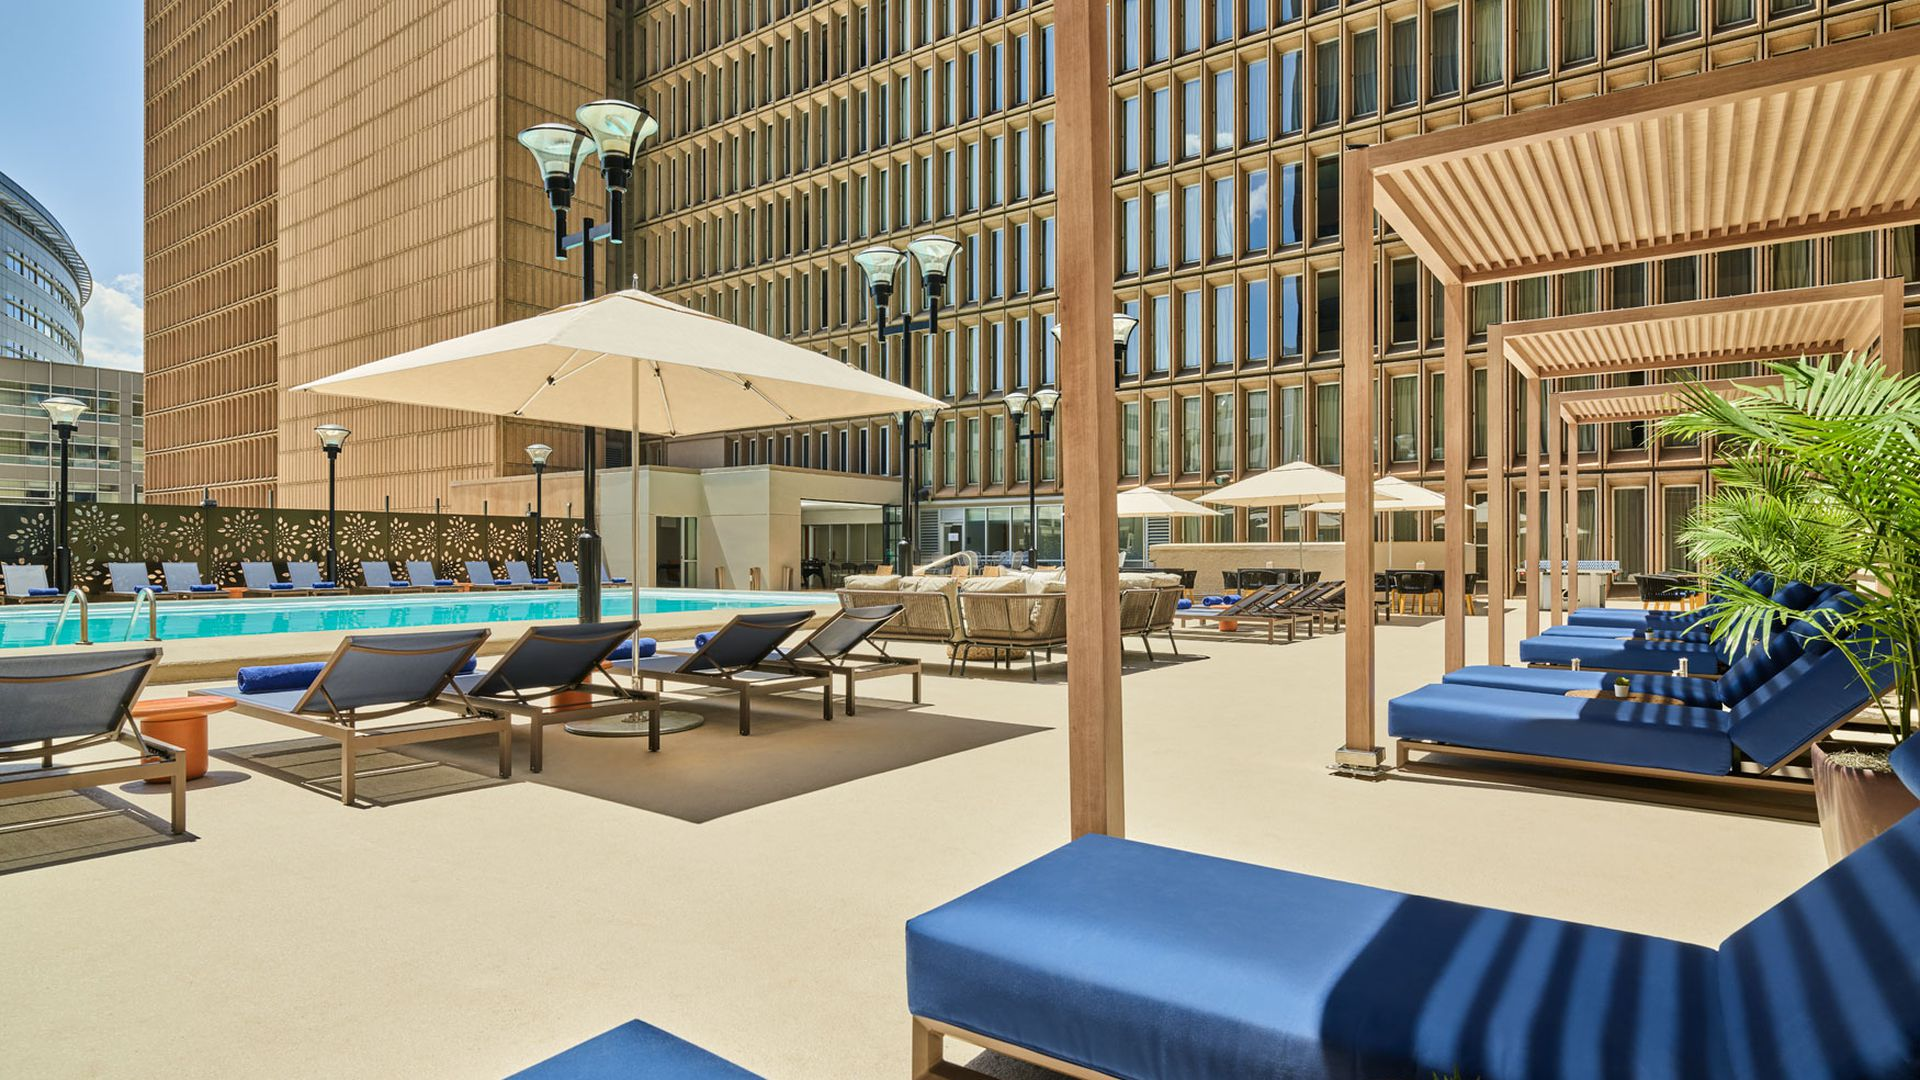 The spritz pool bar at the renovated Sheraton Downtown Denver.